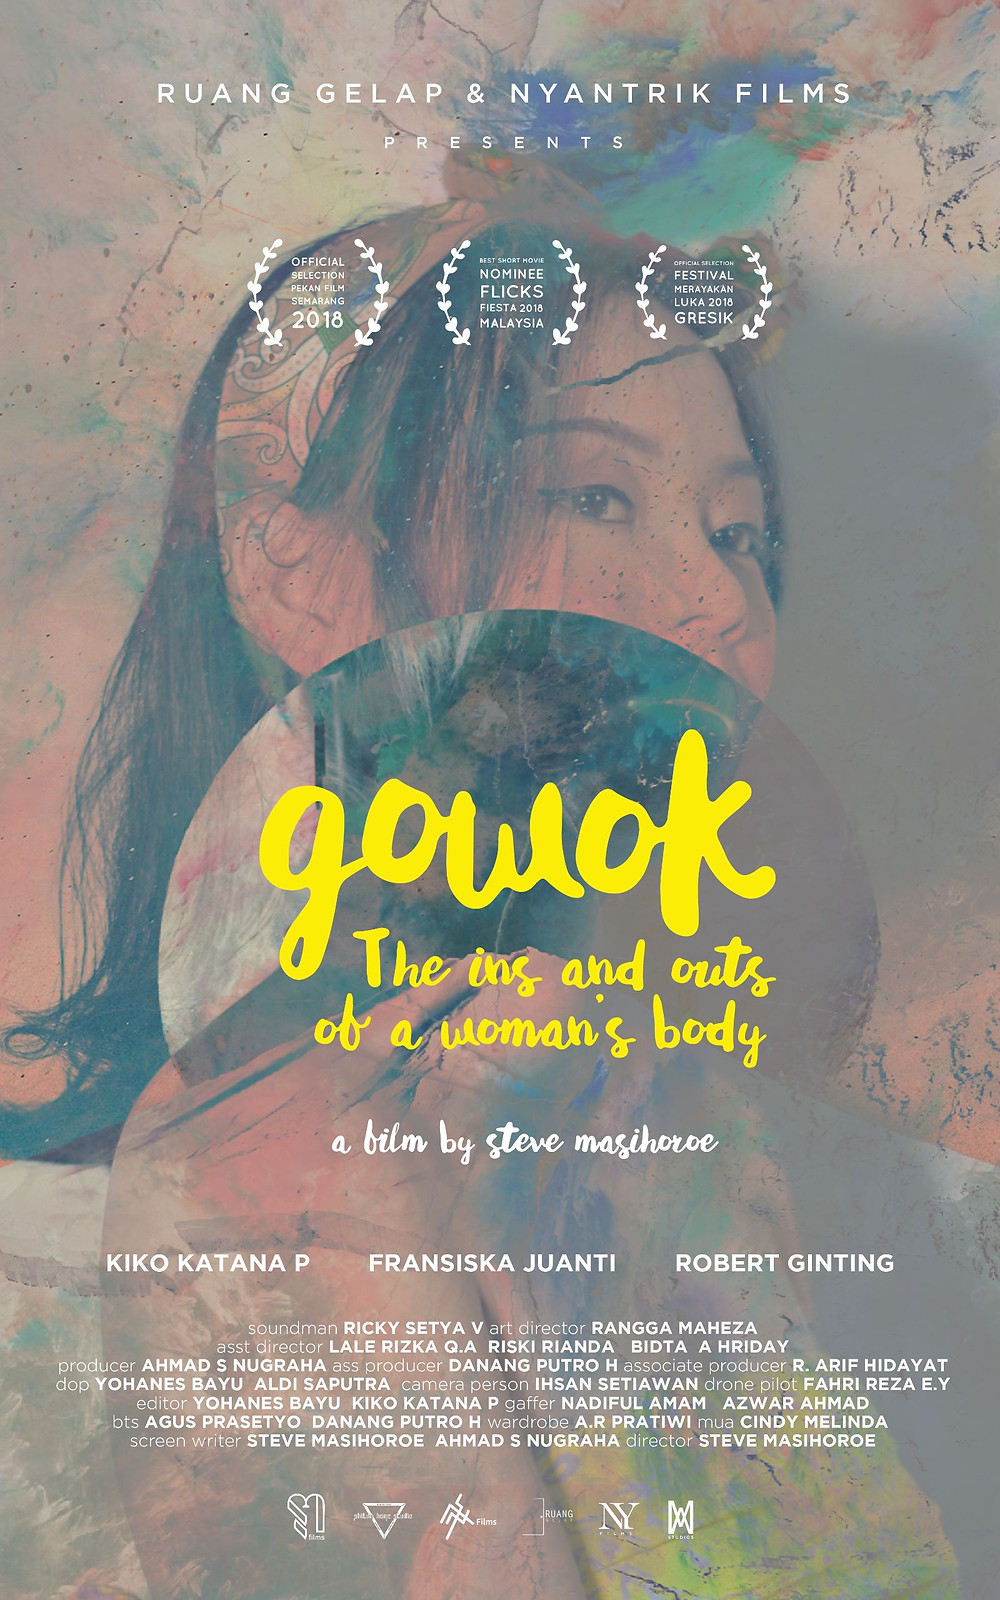 GOWOK (The Ins and Outs of a Woman's Body)